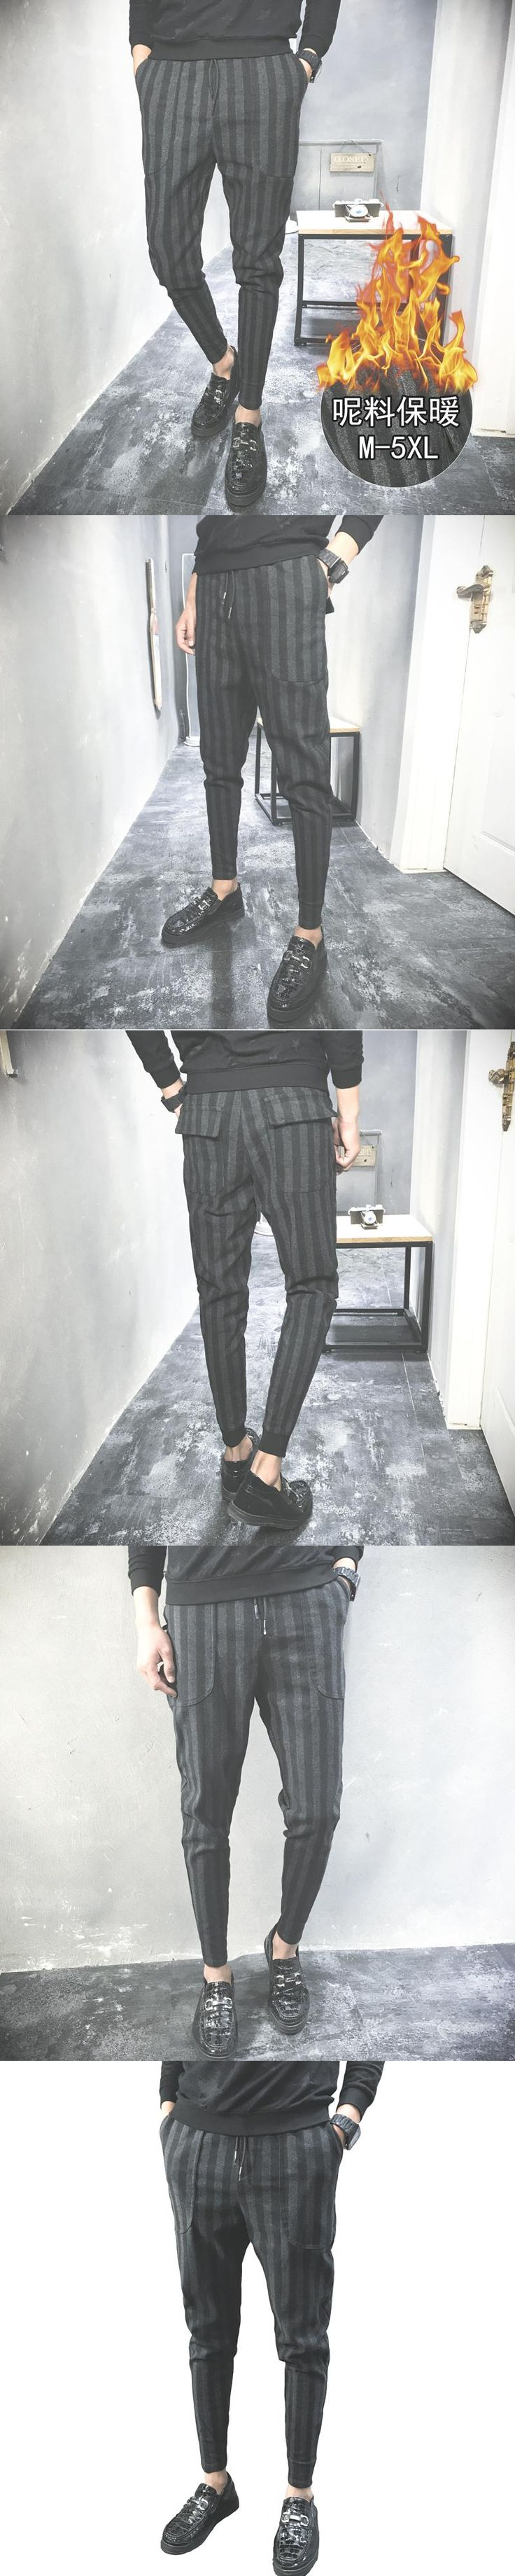 New 2017 Autumn Winter Worsted Stripe Bound Feet Haren Casual Pants Keep Warm Pantalon Hombre Chinos Mens Inverno Trousers Youth